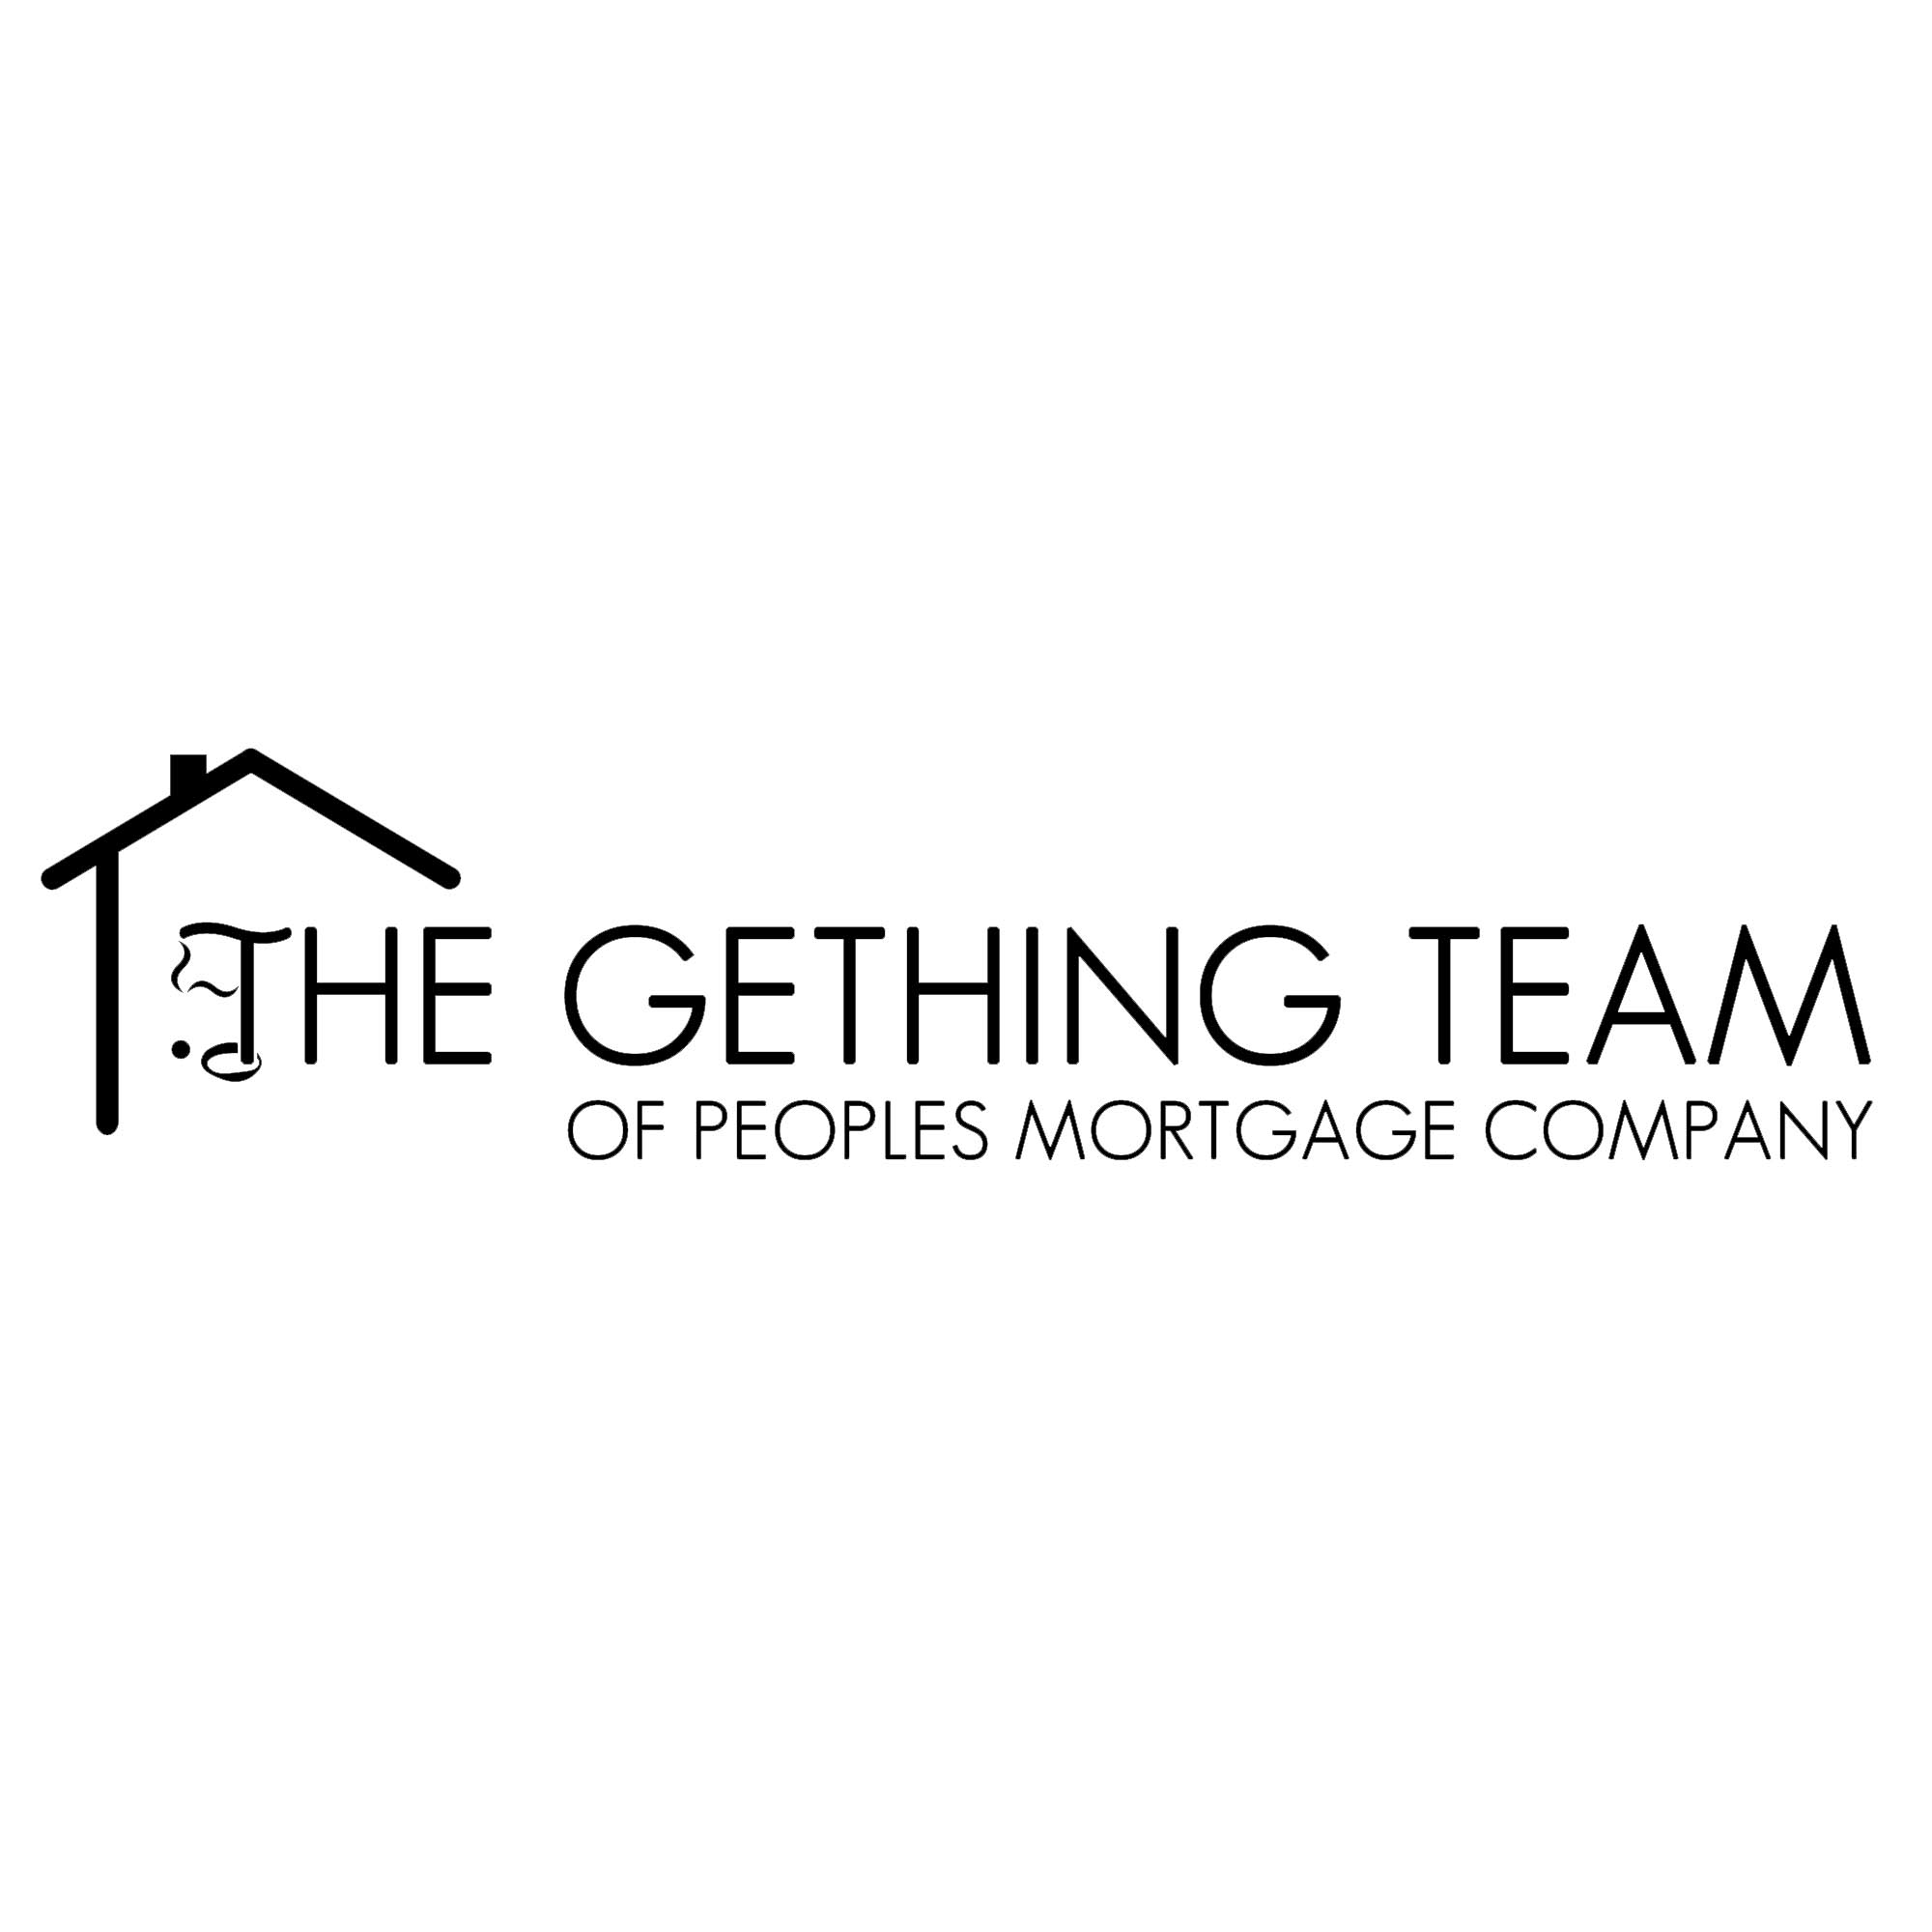 The Gething Team of Peoples Mortgage